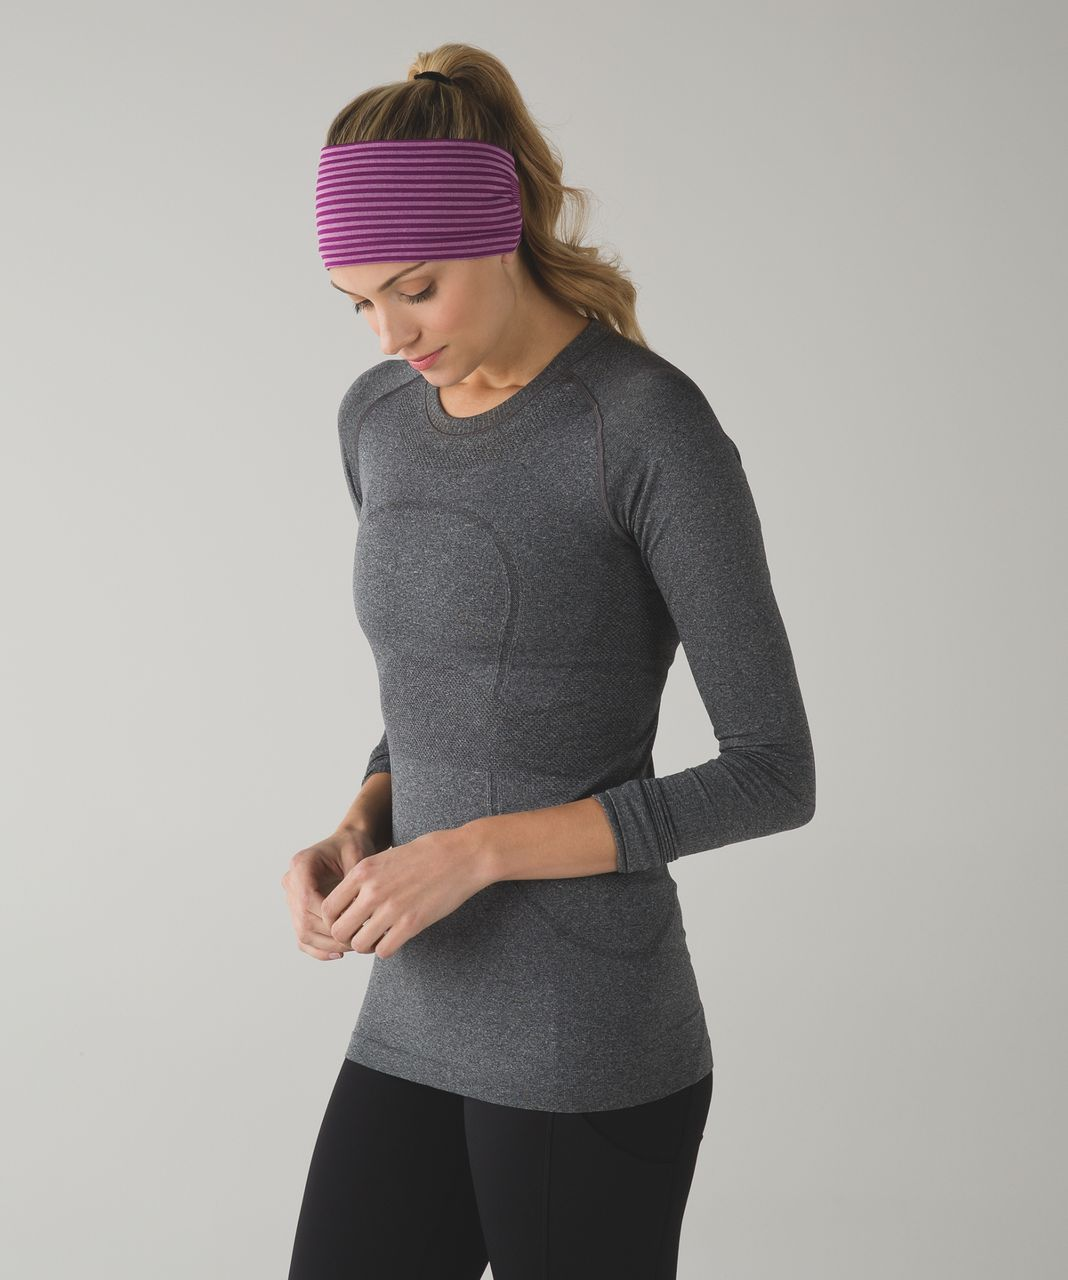 Lululemon Bangs Back Headwrap - Heathered Regal Plum